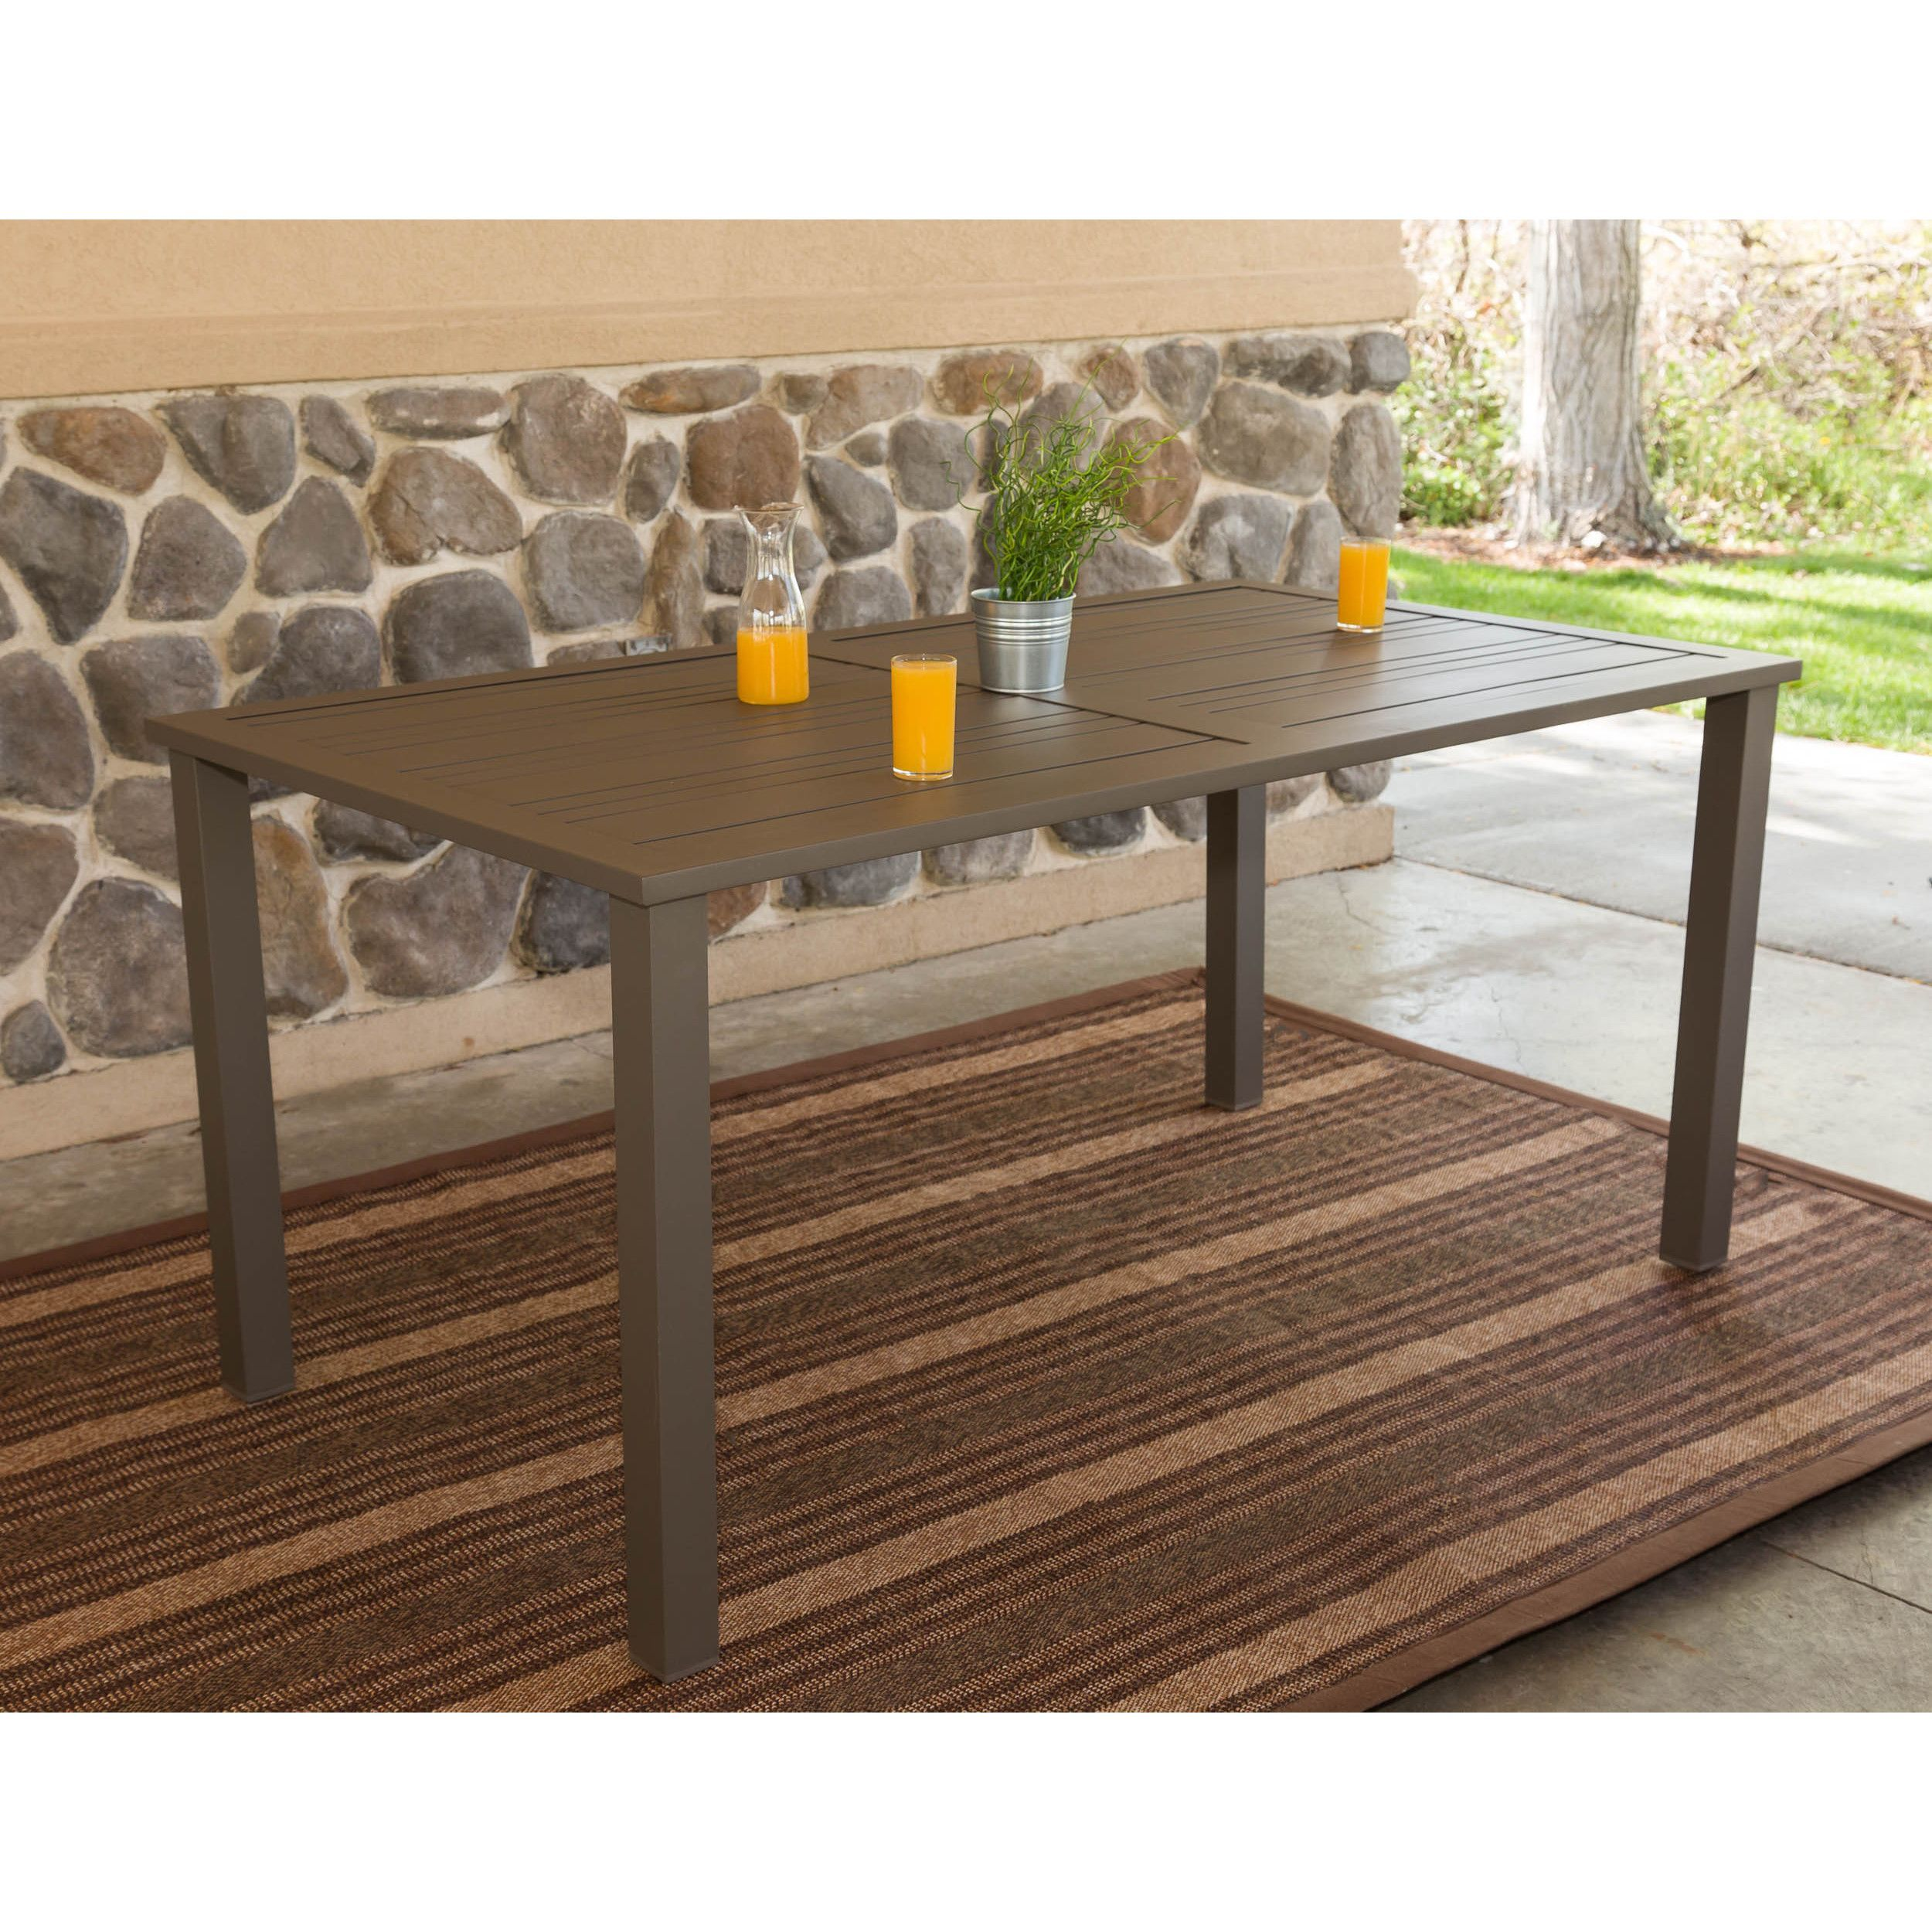 enhance your outdoor dining experience with the modern industrial rh pinterest com